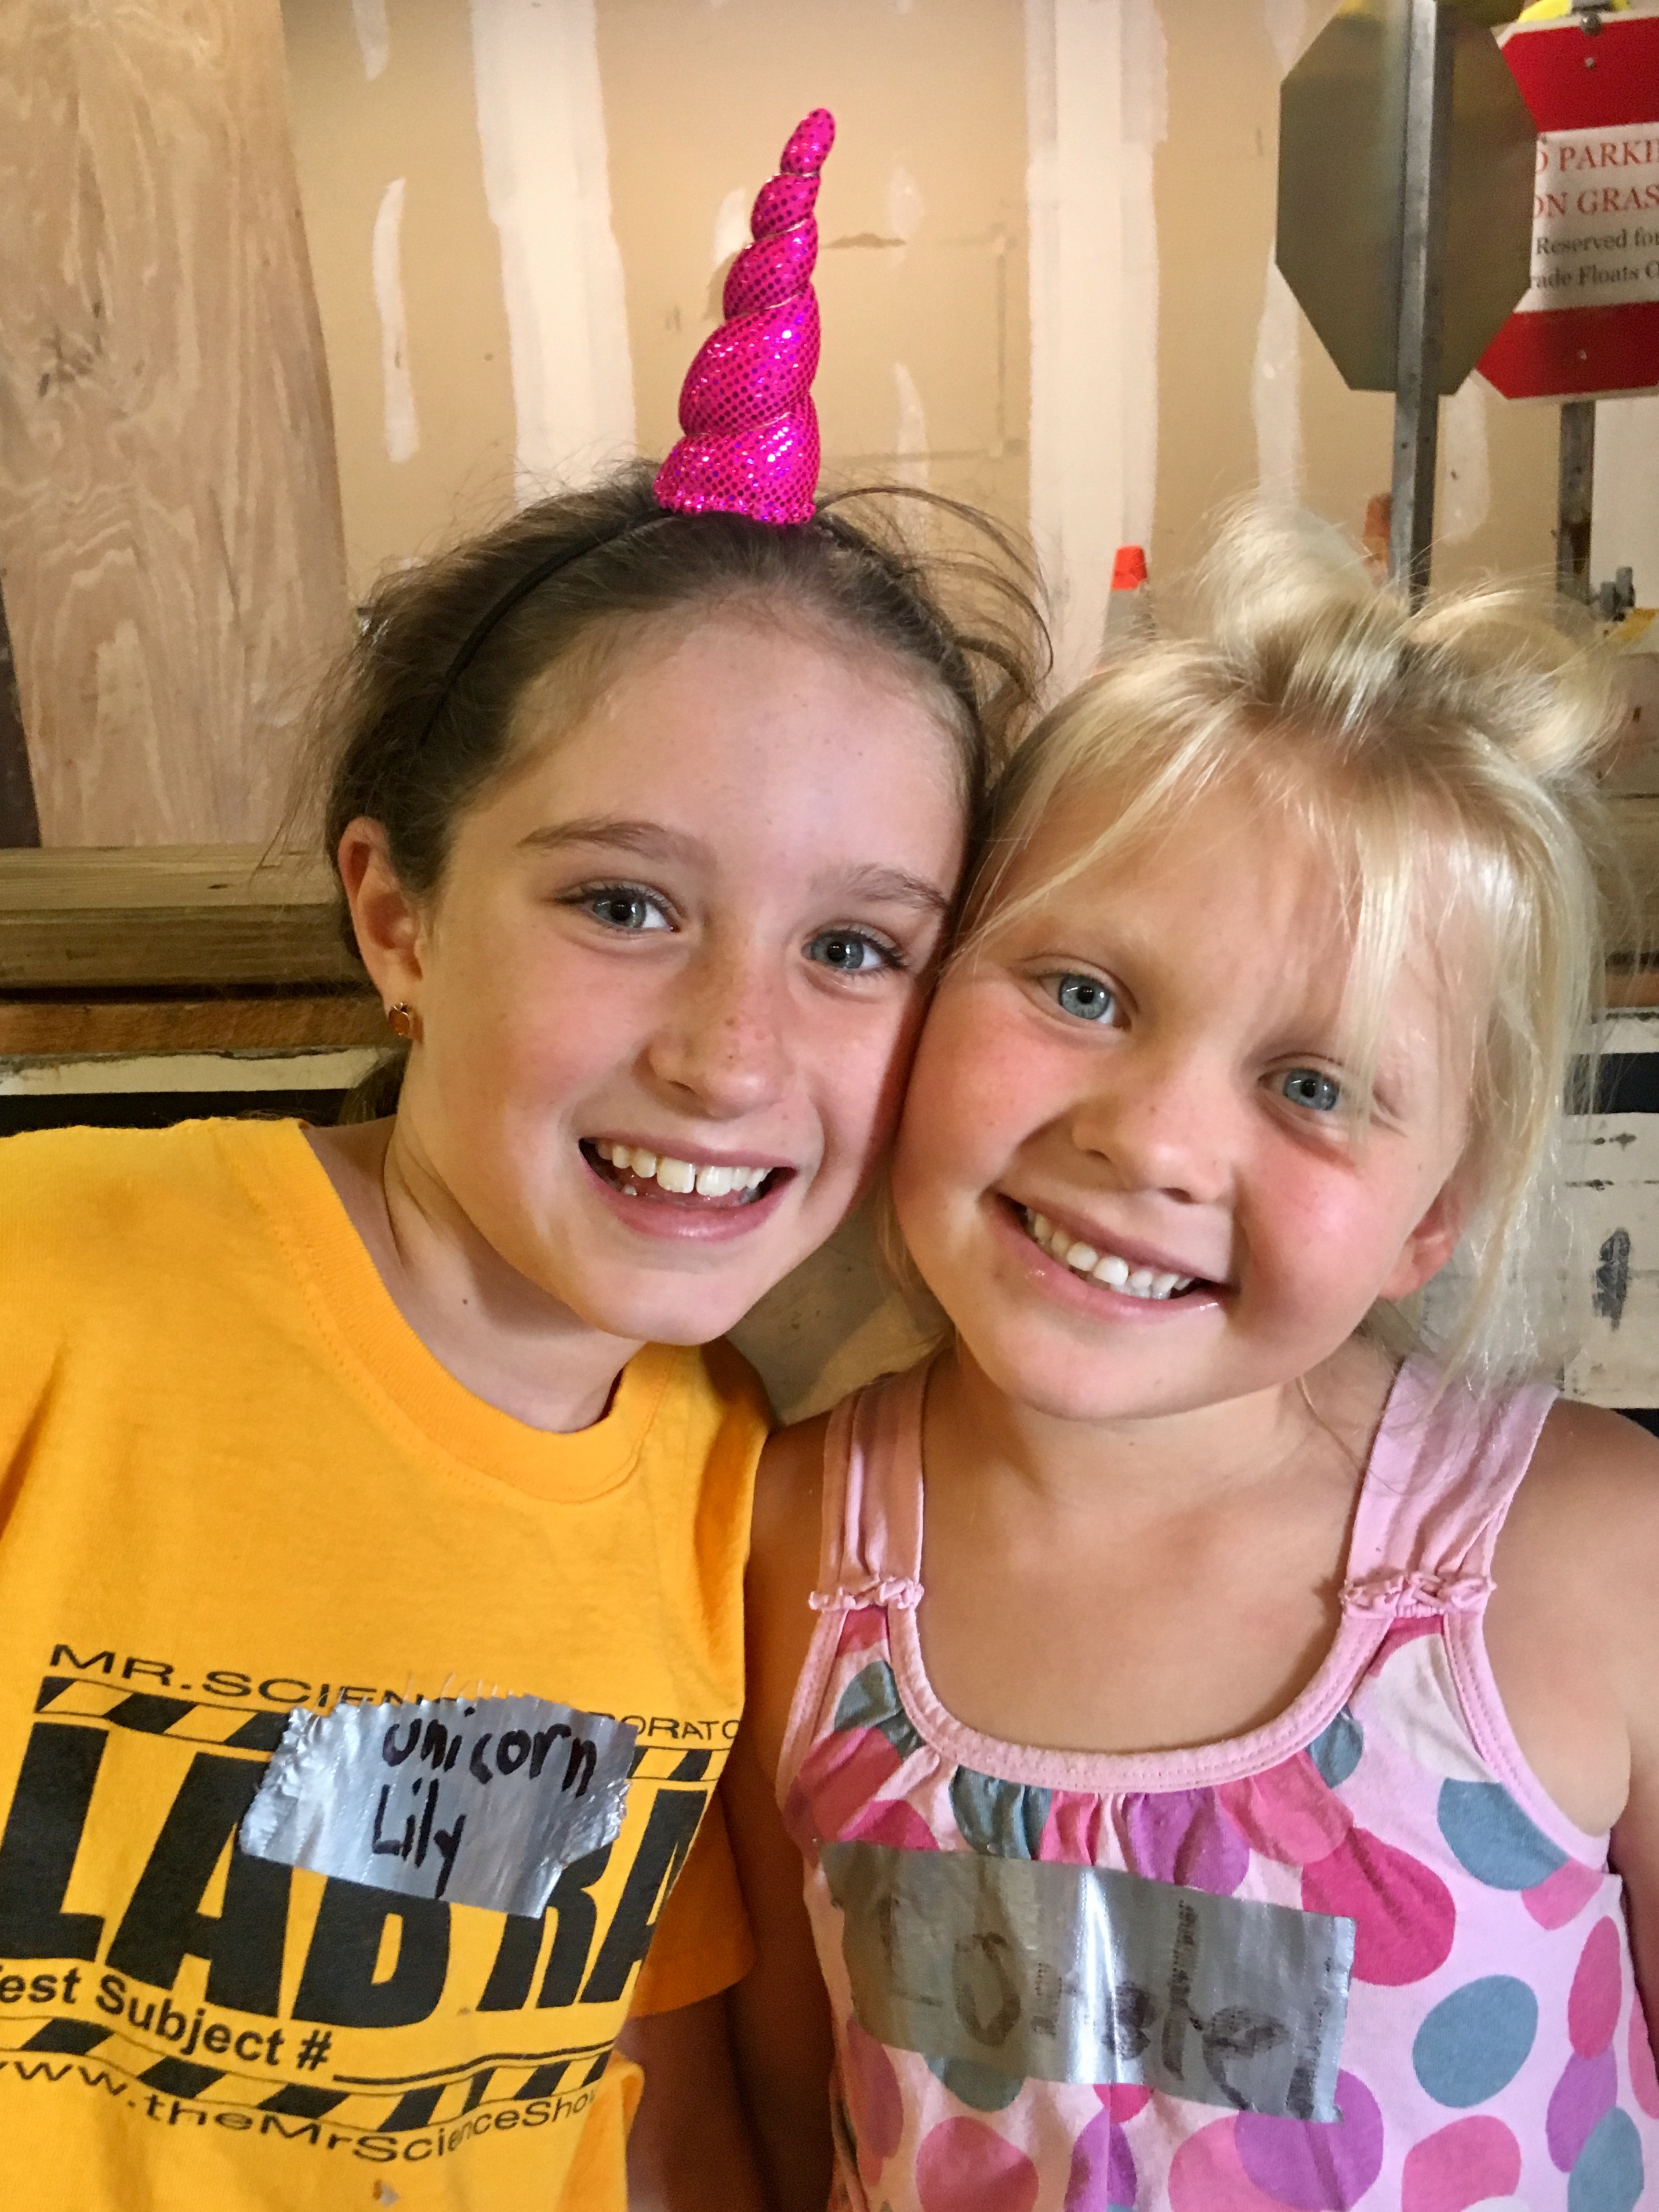 Lily and Lorelei at Science Camp